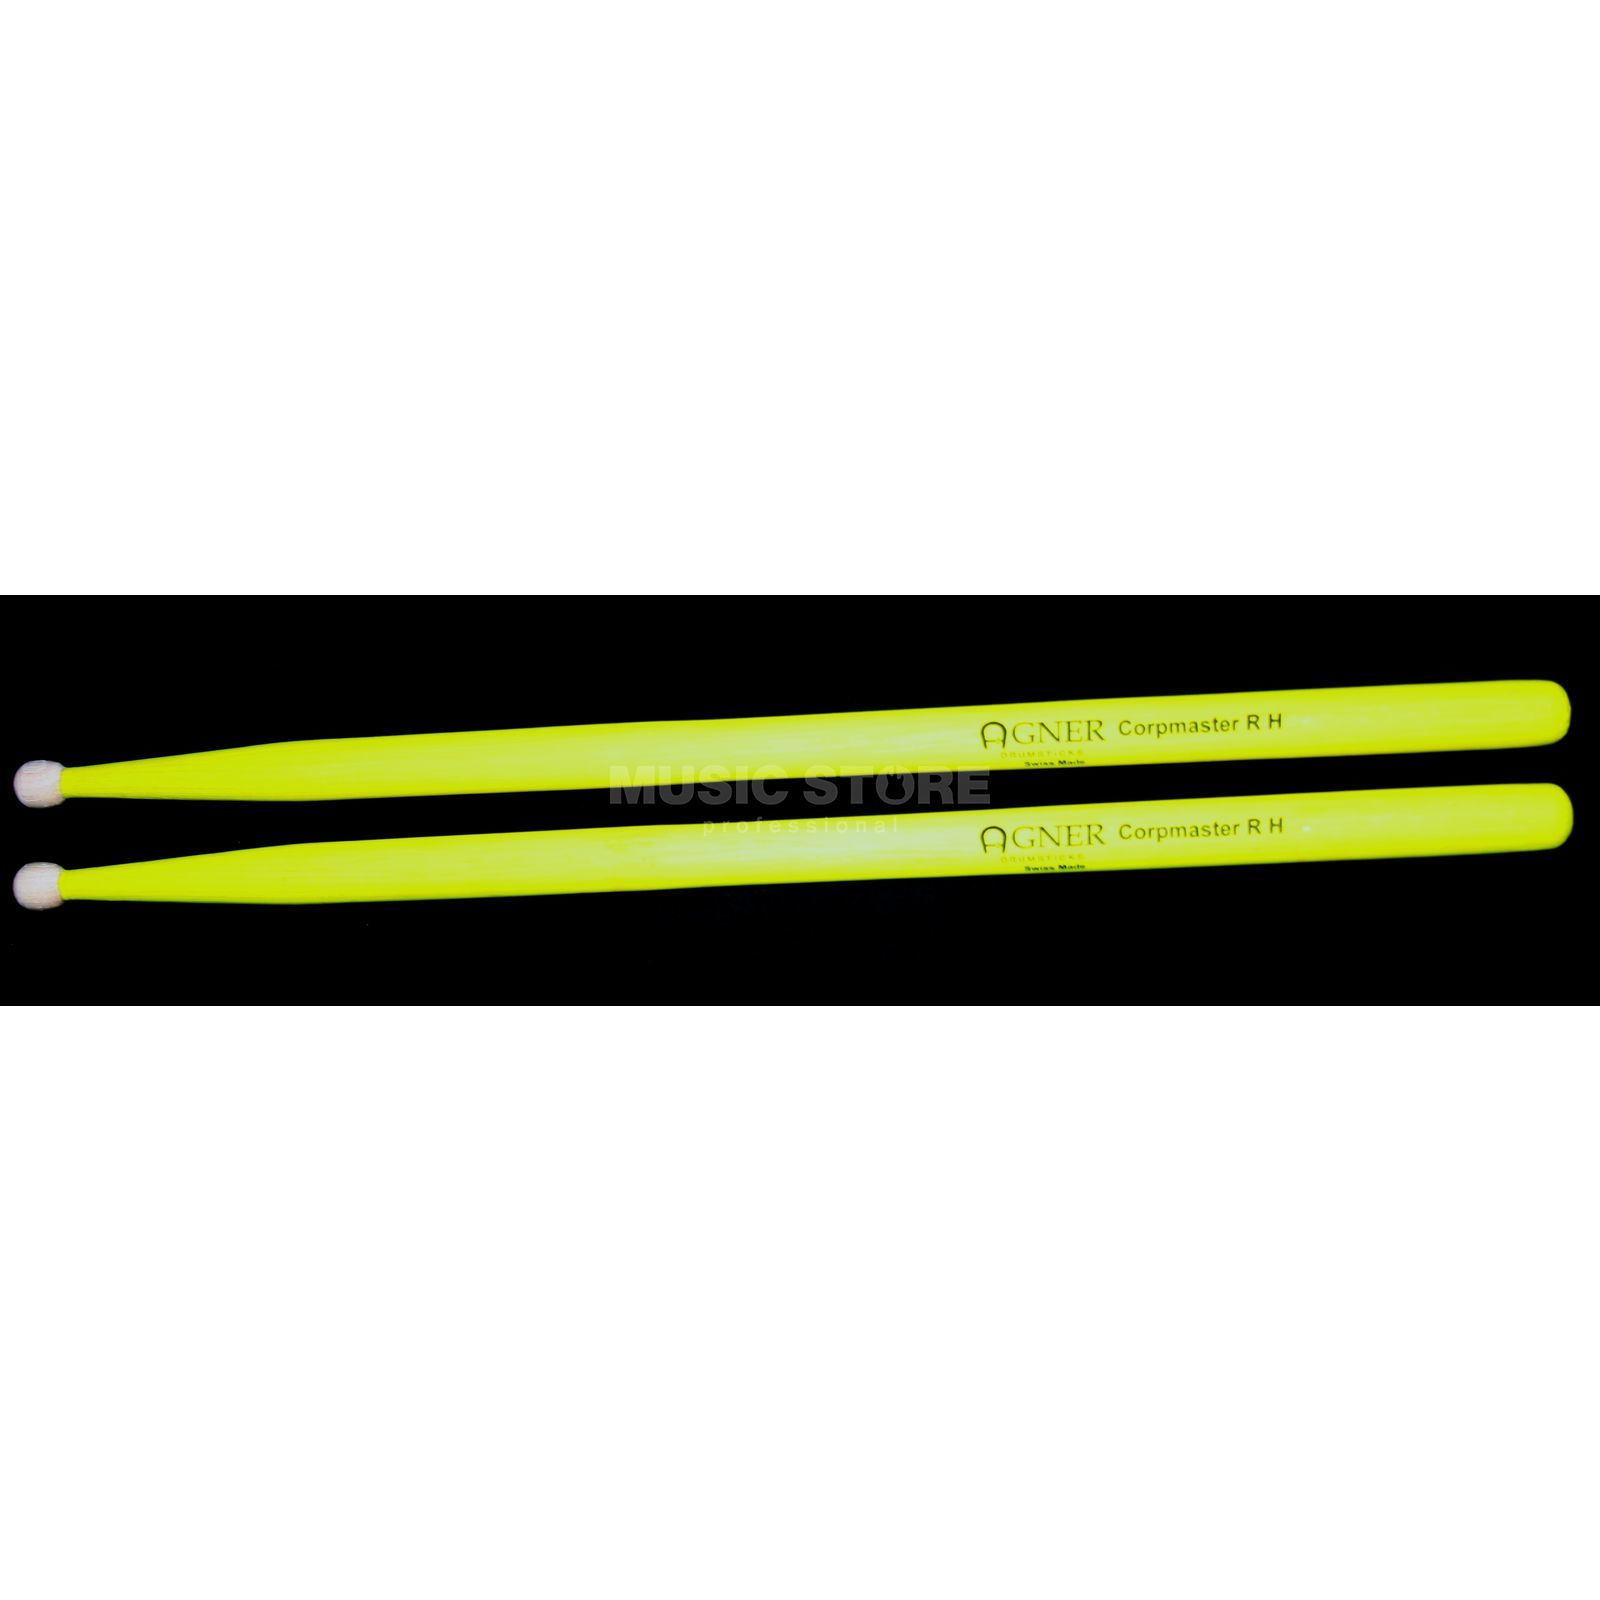 Agner UV-Marching Sticks, 4A, Corpmaster R H, Yellow Produktbild